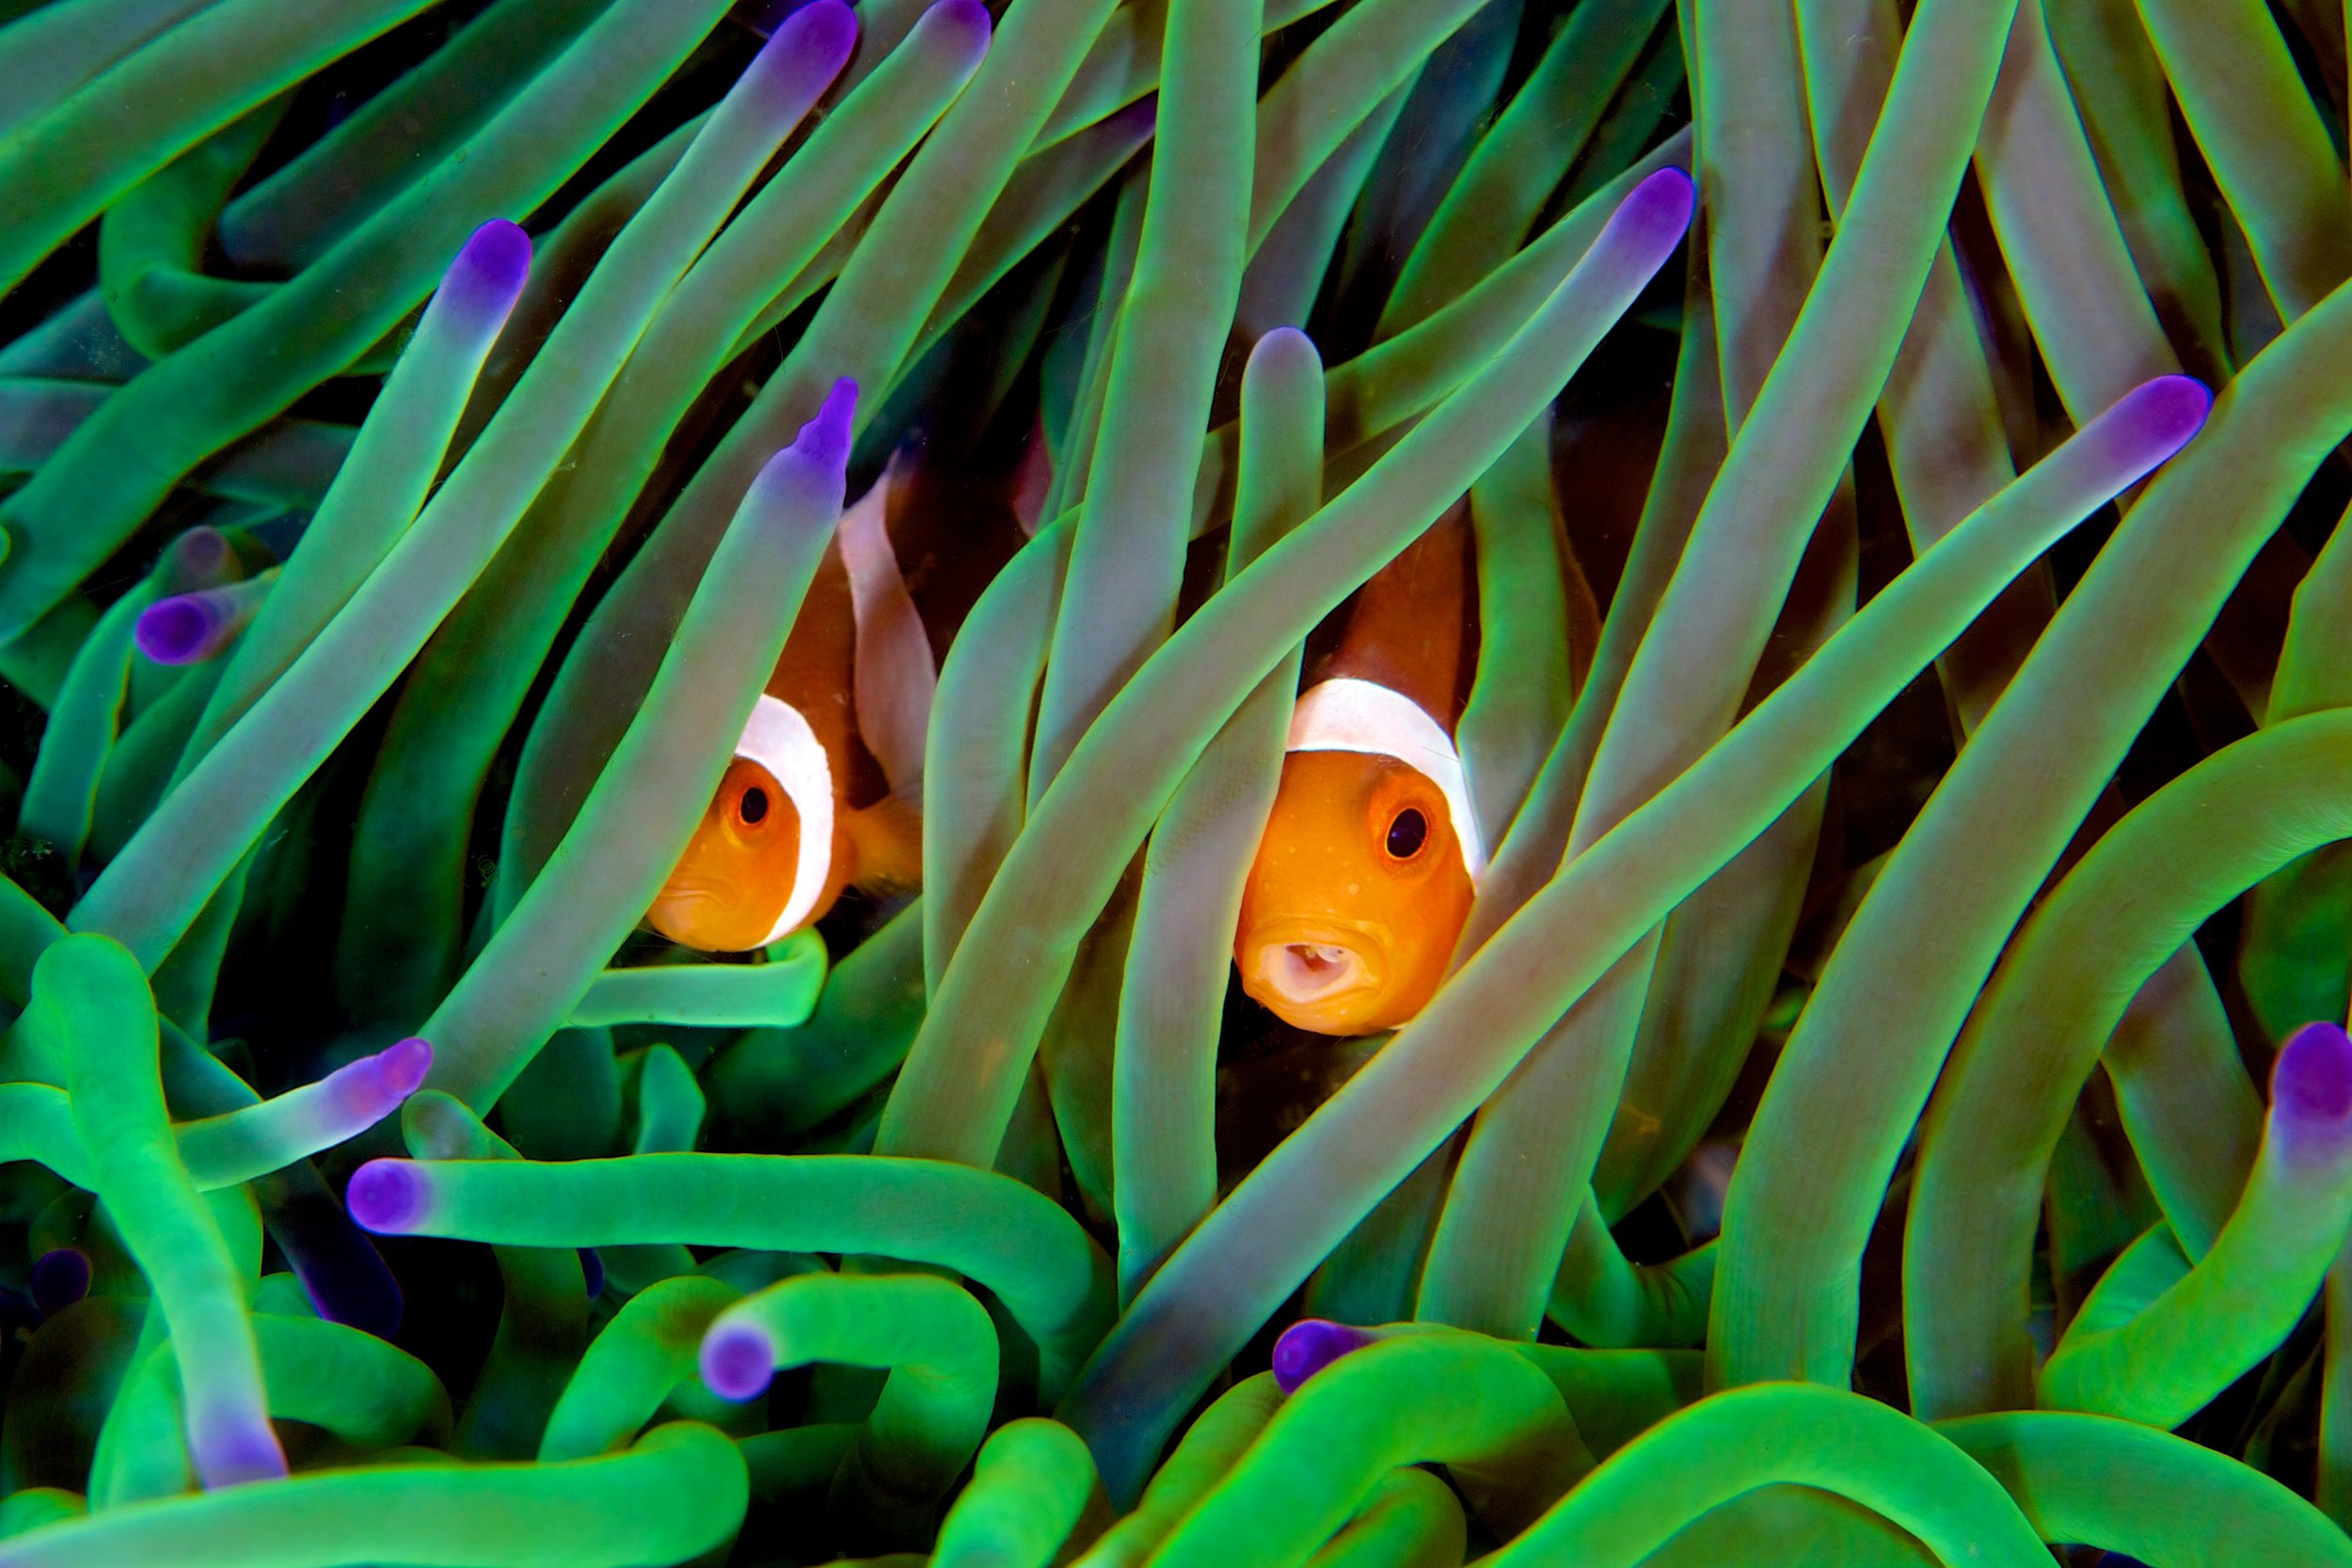 CLOWNFISH IN KOMODO CREDIT: GREGORY PIPER / coral reef image bank